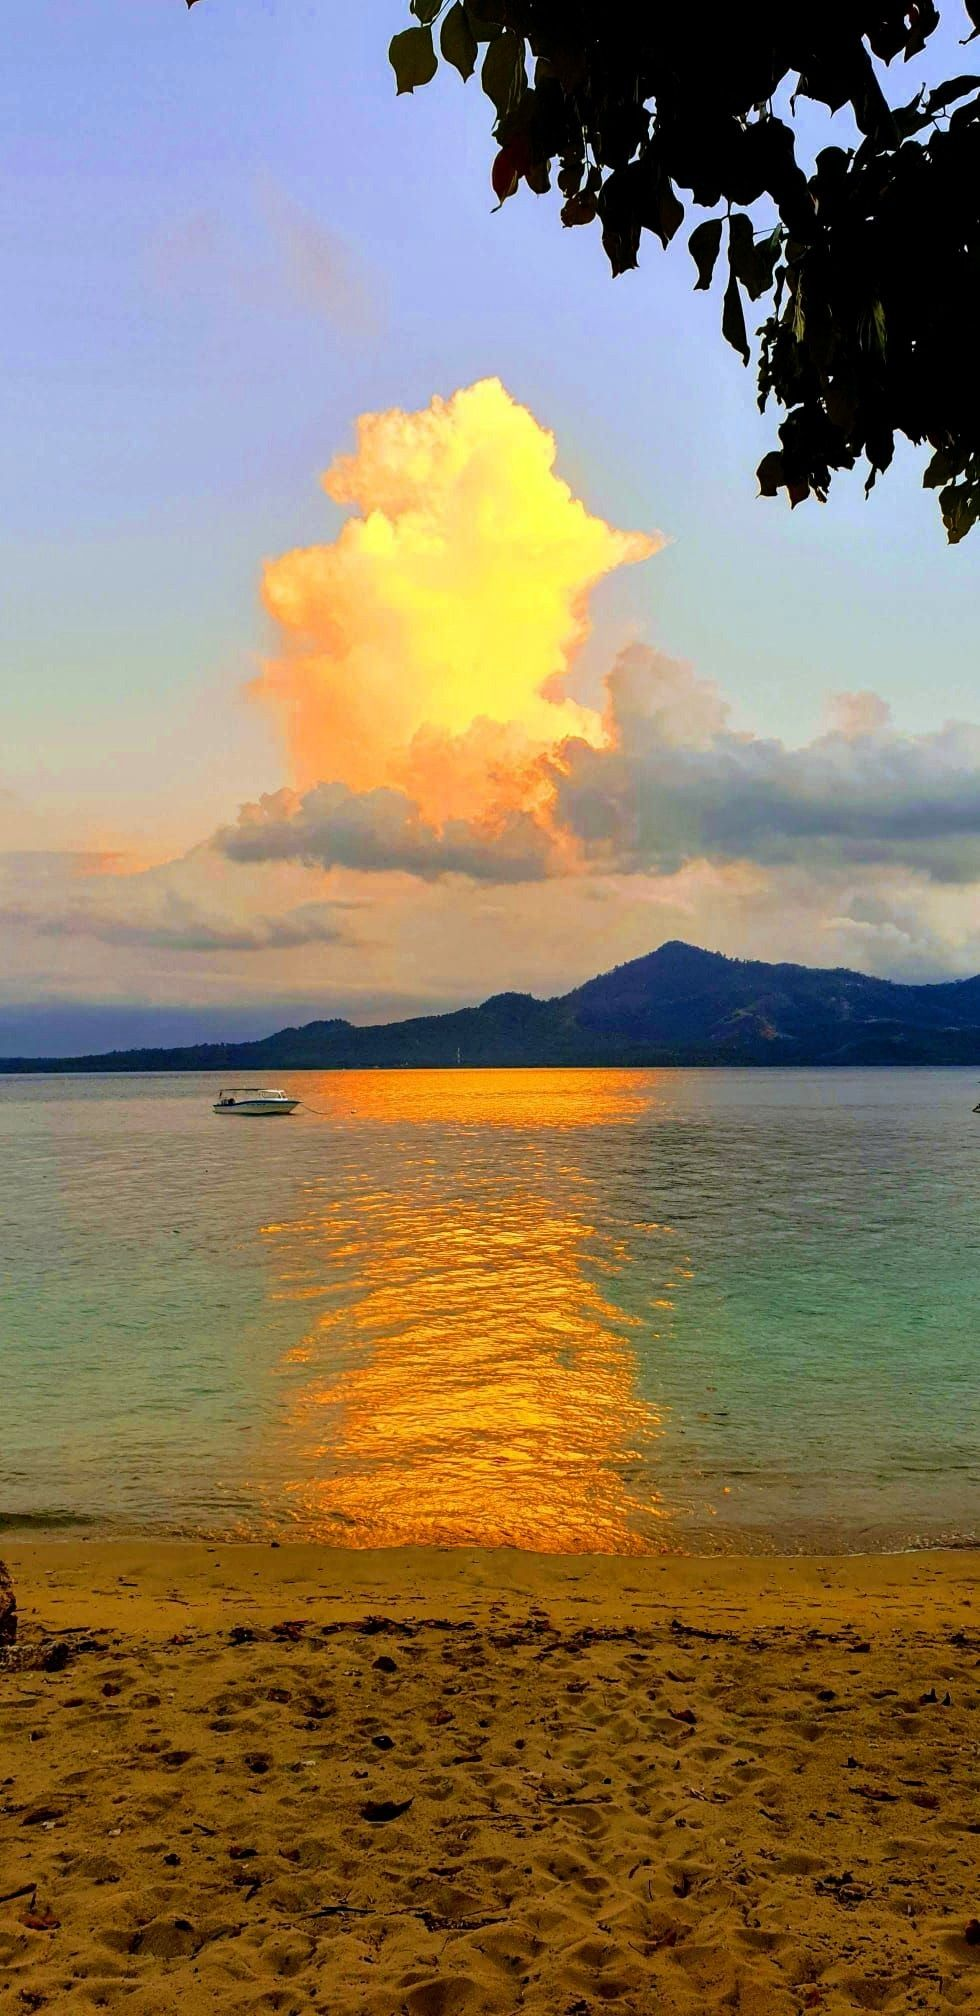 sky is painted in different colors every day when the sun sets over Siladen Island. A fantastic and